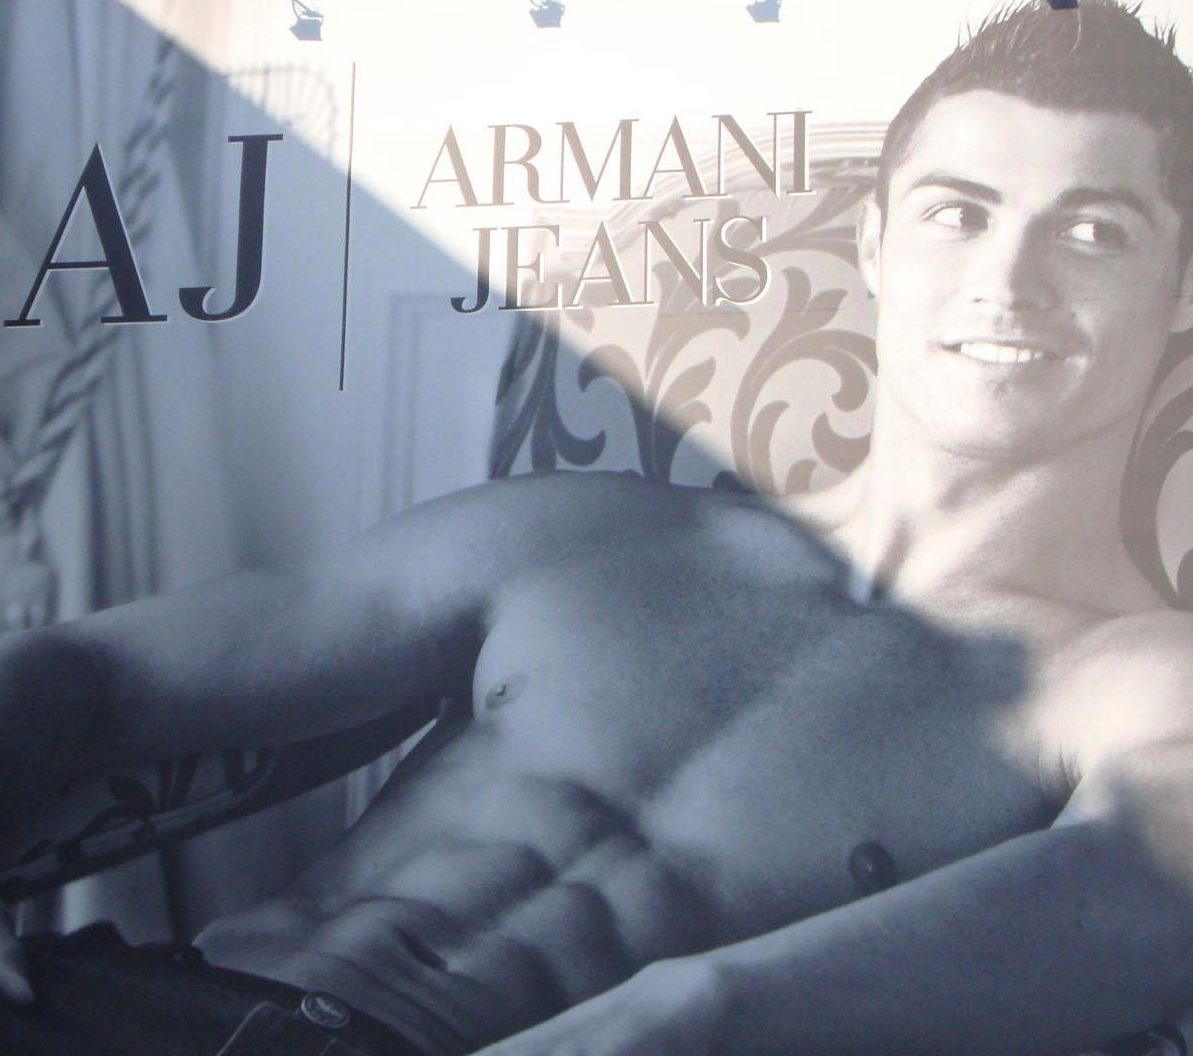 Ronaldos Armani Jeans deal is worth £1.2million